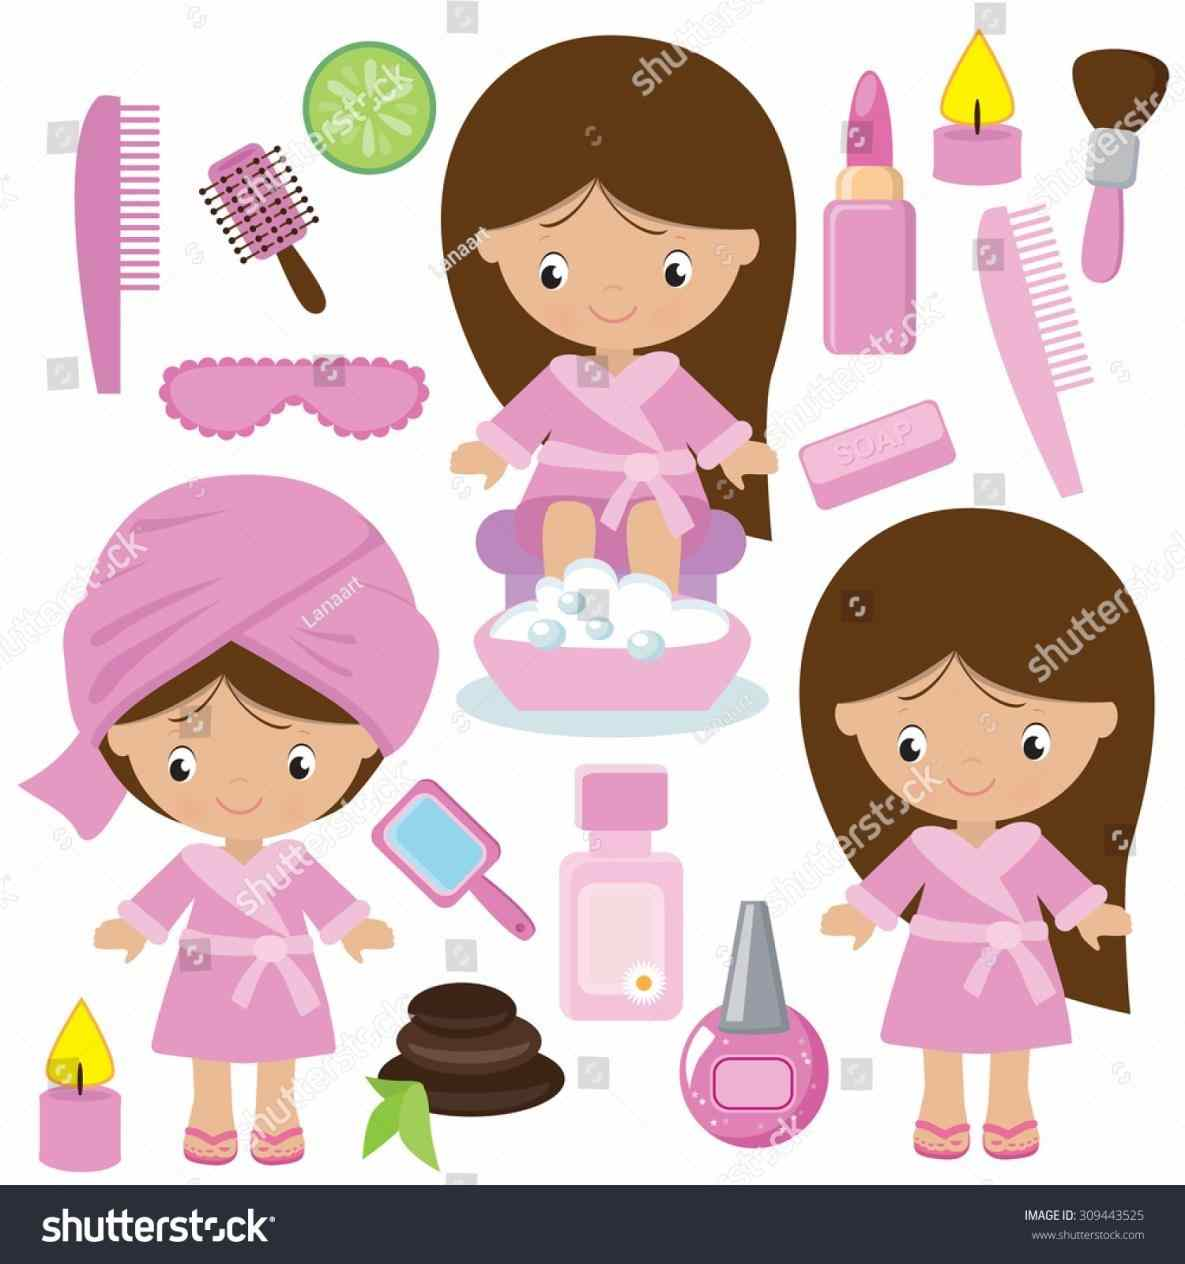 Beauty clipart day. For scrapbooking card making